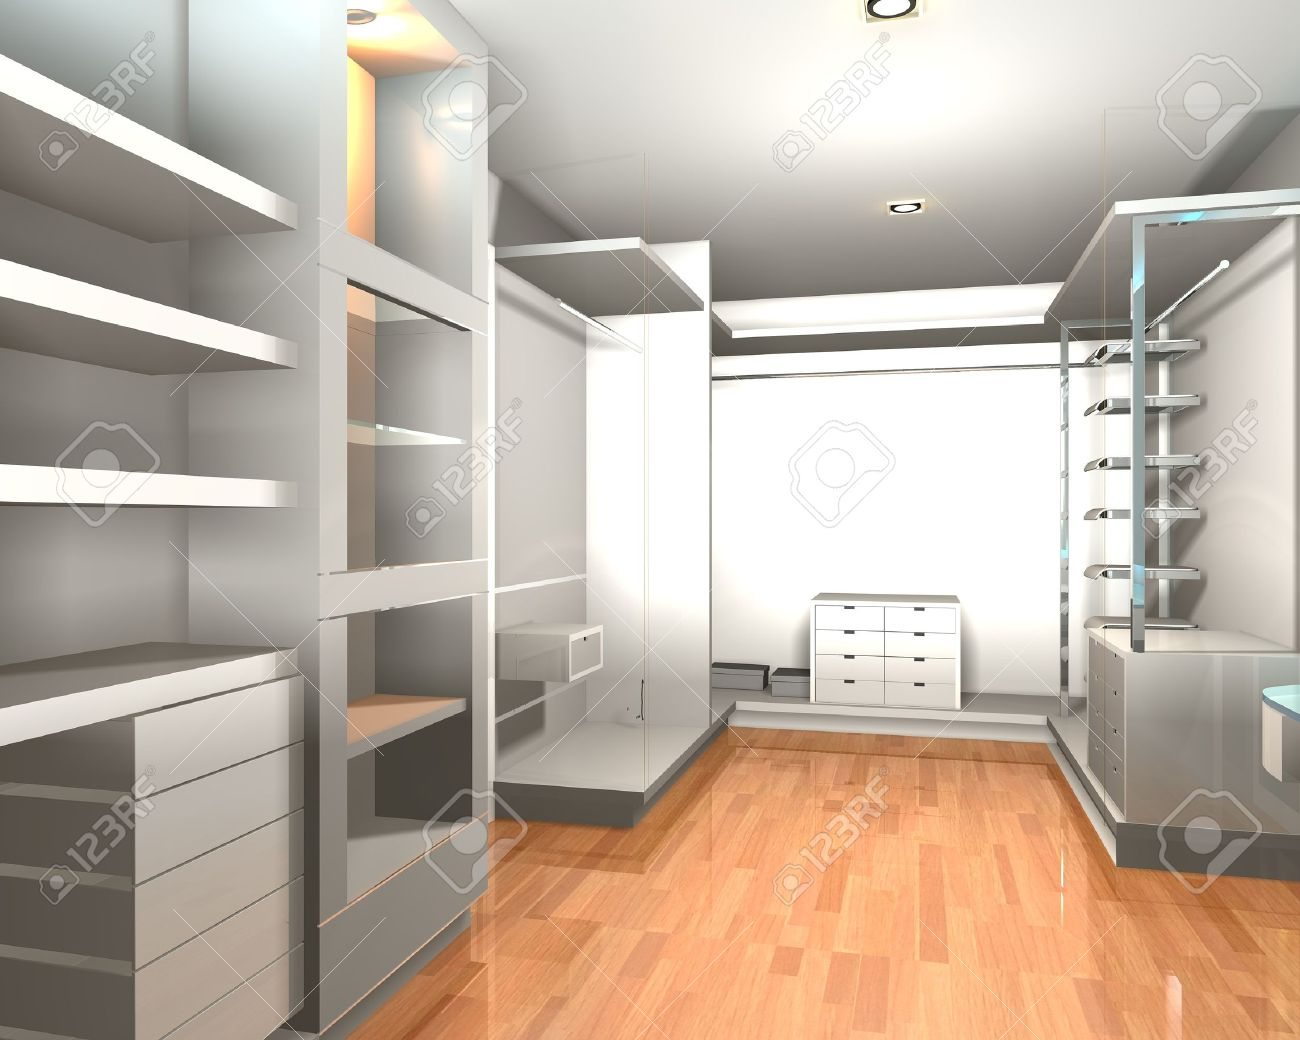 empty walk in closet chandelier empty interior modern room for walk in closet with shelves and white wall stock photo interior modern room for walk in closet with shelves and